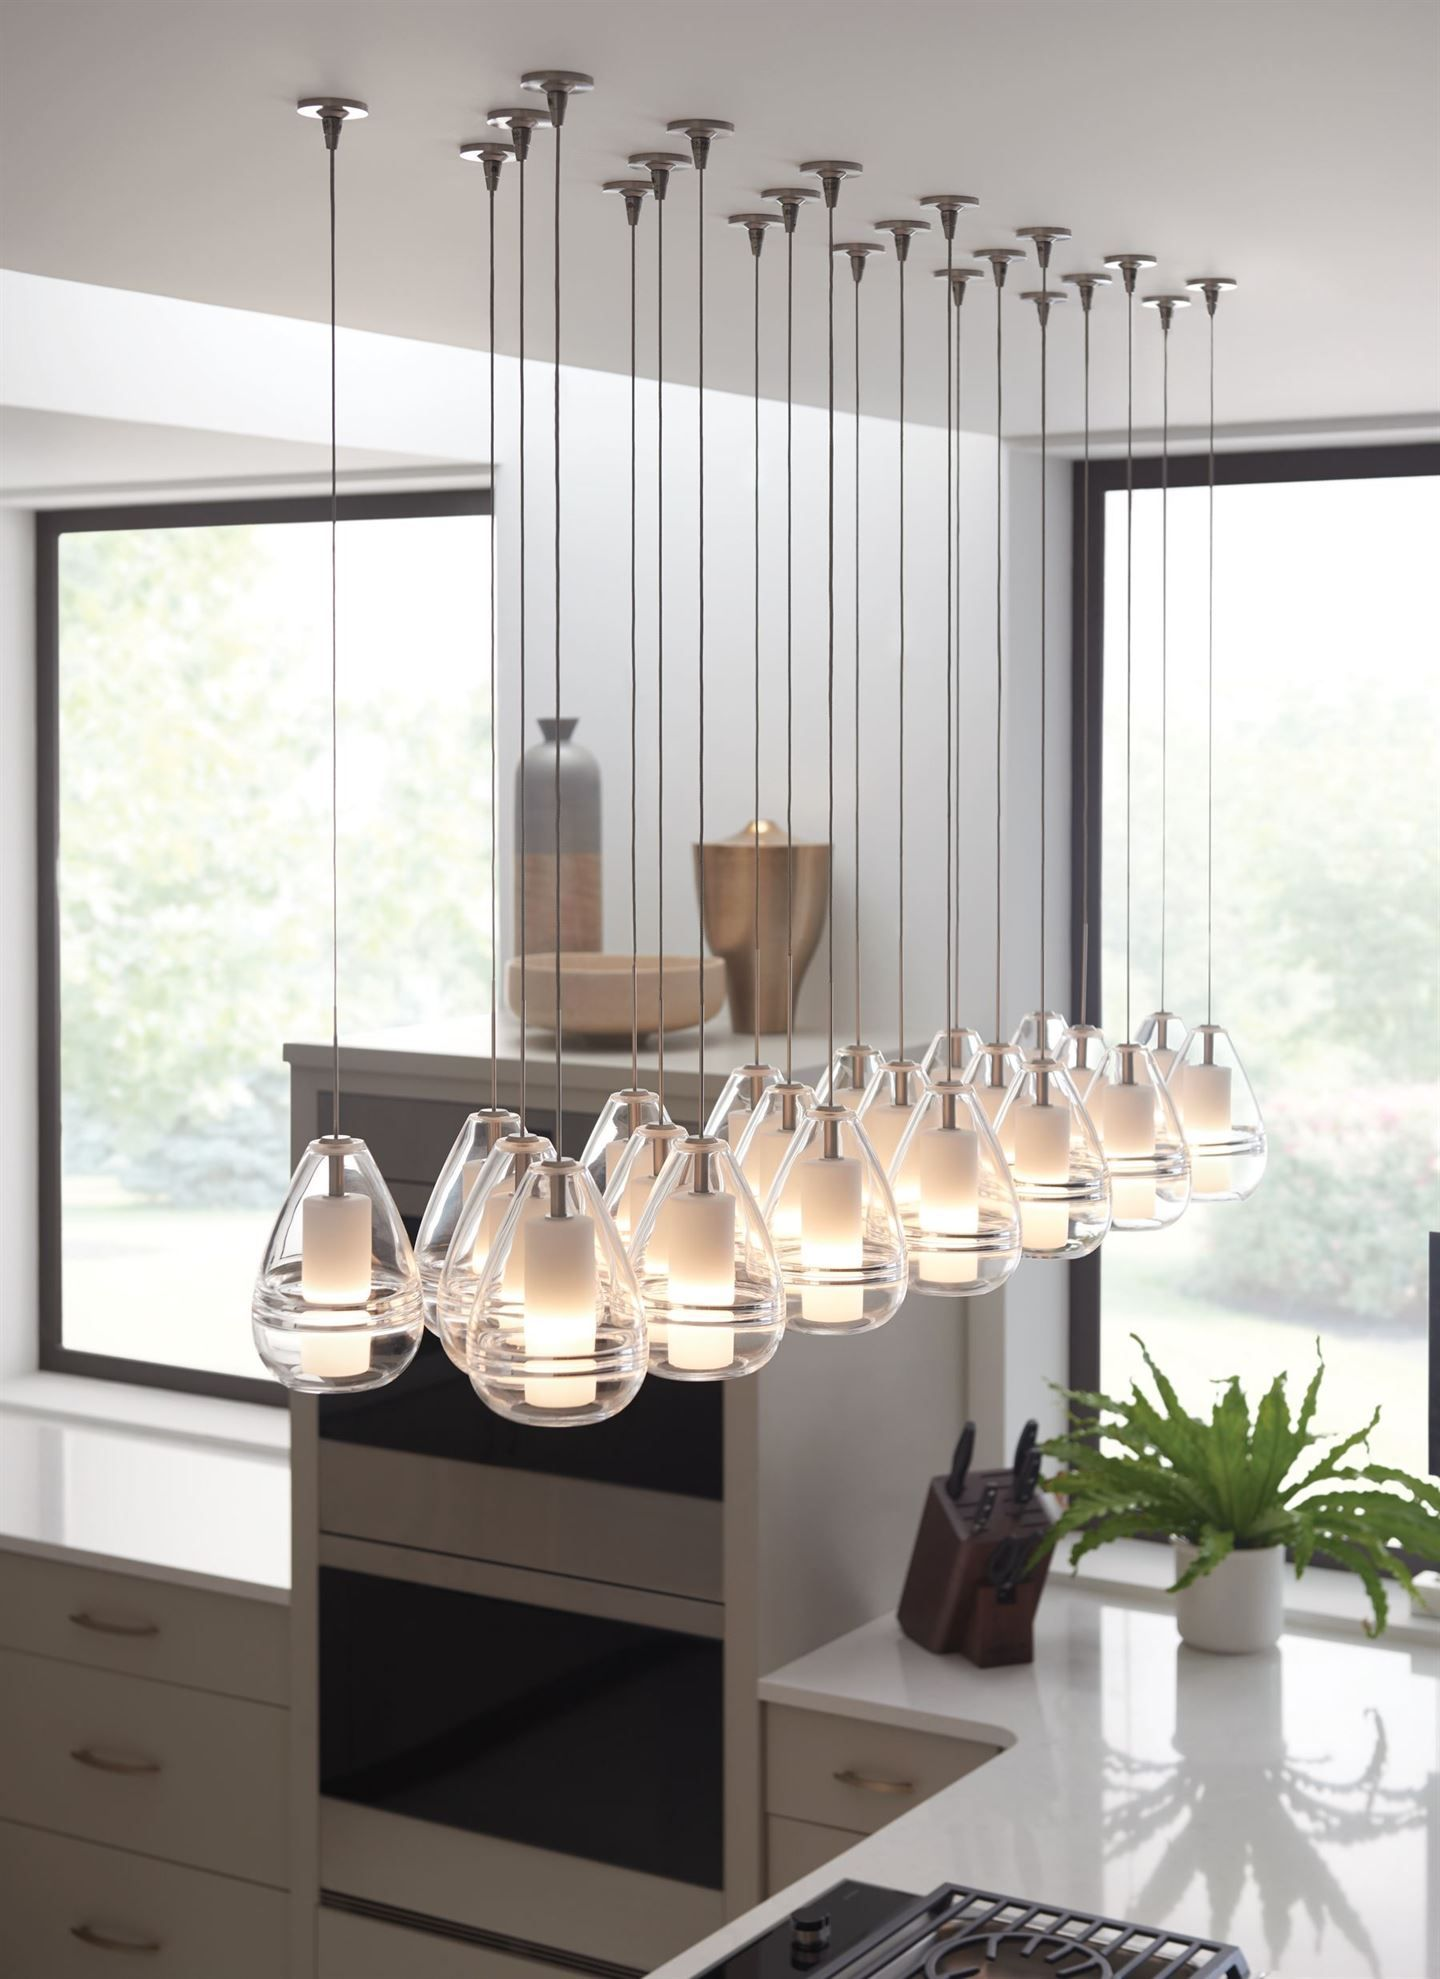 Modern Kitchen Island Lighting Ideas (With images